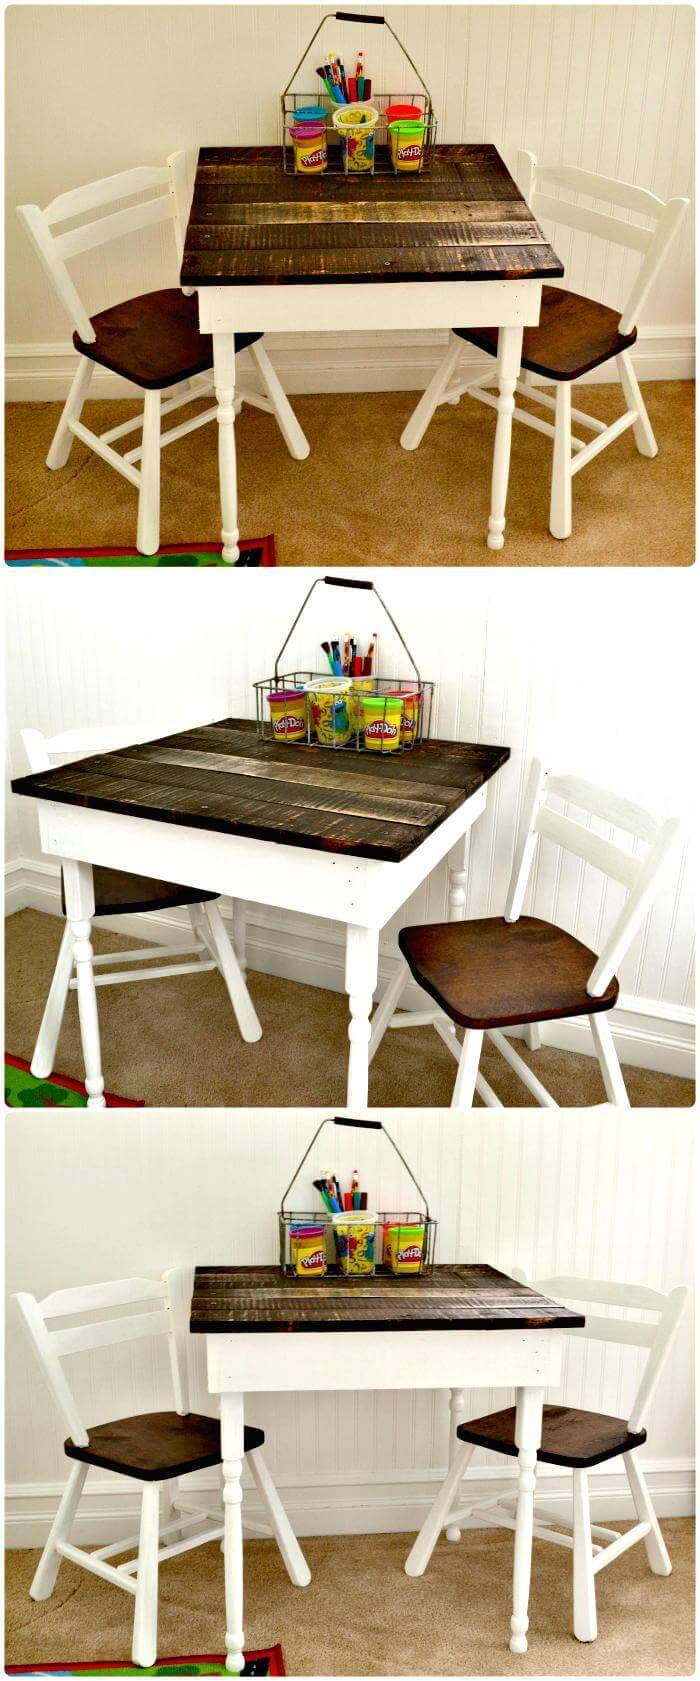 DIY Kid's Pallet Table